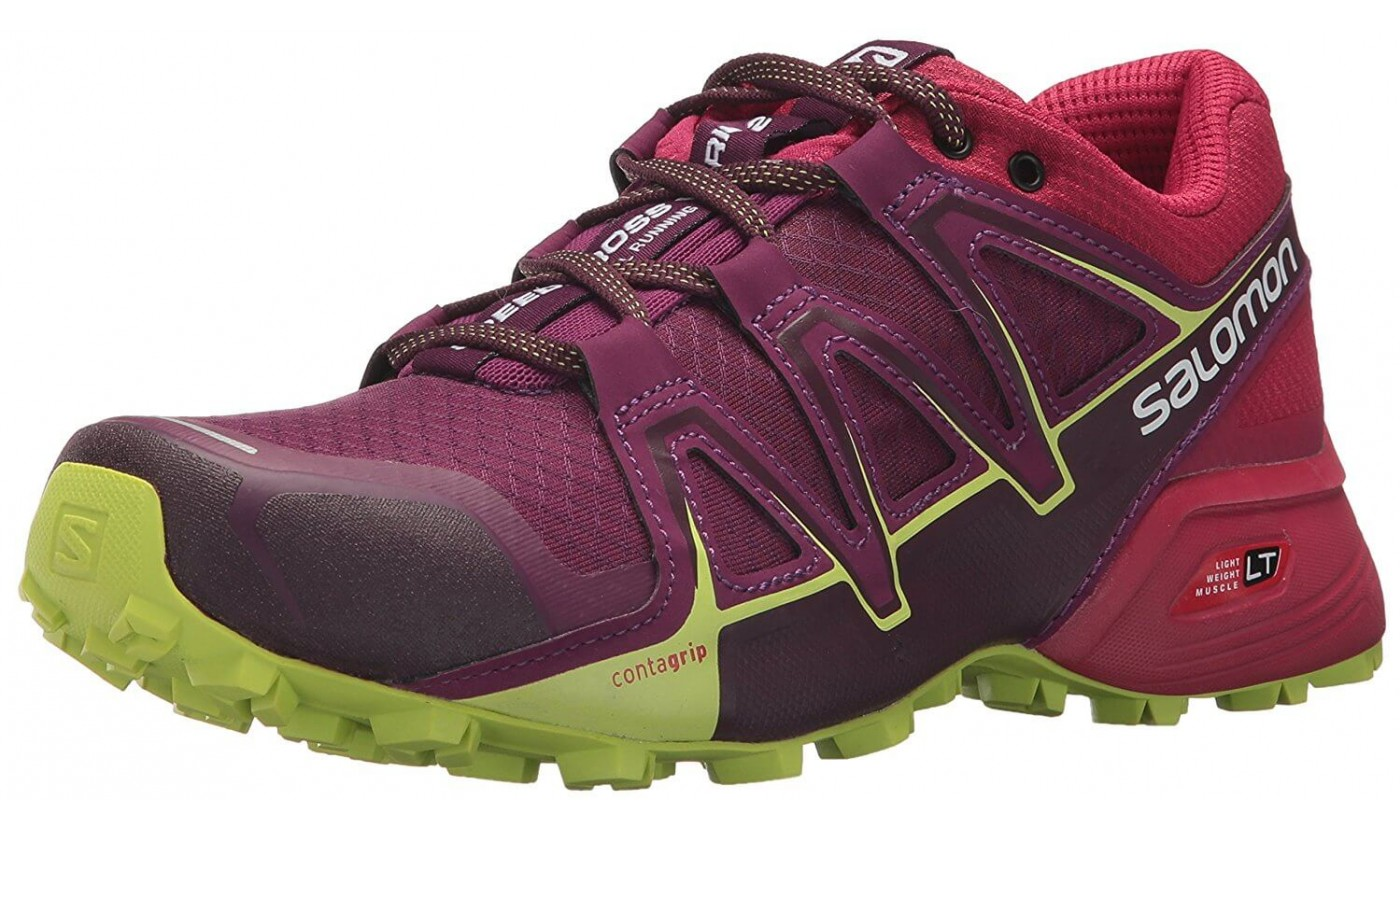 The Salomon Speedcross Vario 2 features a Mud Guard midsole wrap